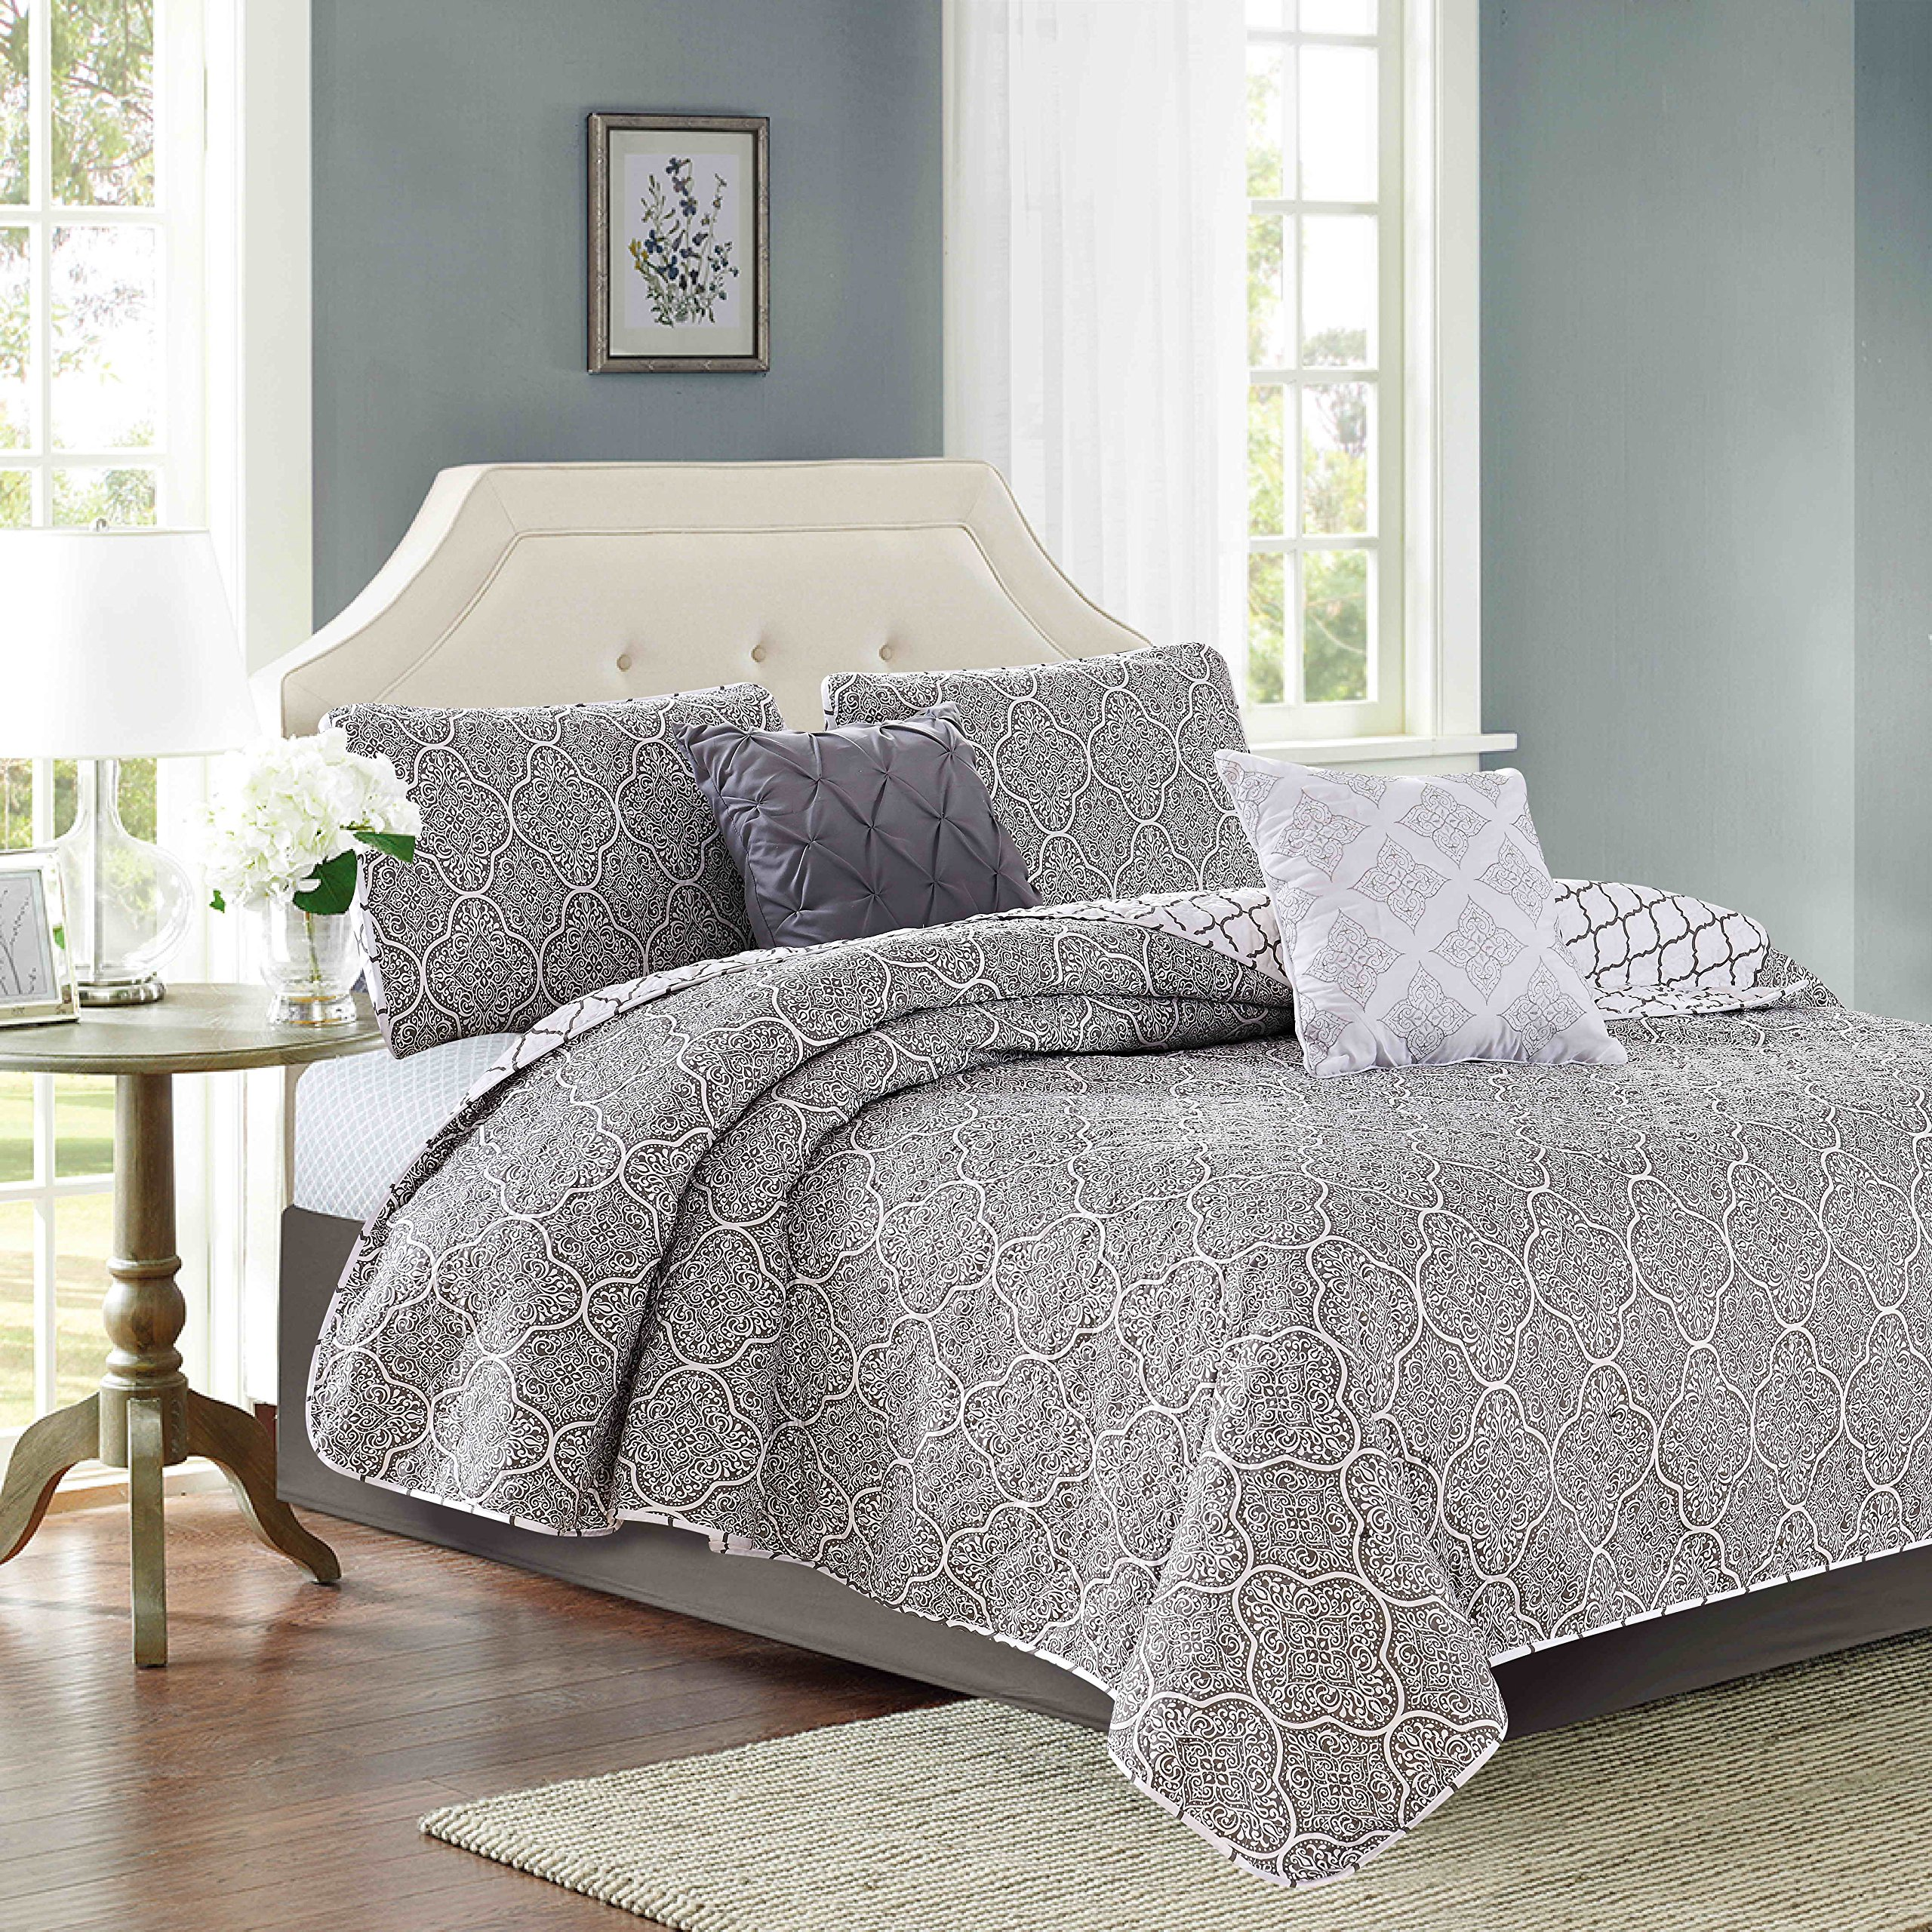 Sweet Home Collection Decorative Fashion Quilt Set Includes Shams and More, Queen, Gray, 5 Piece